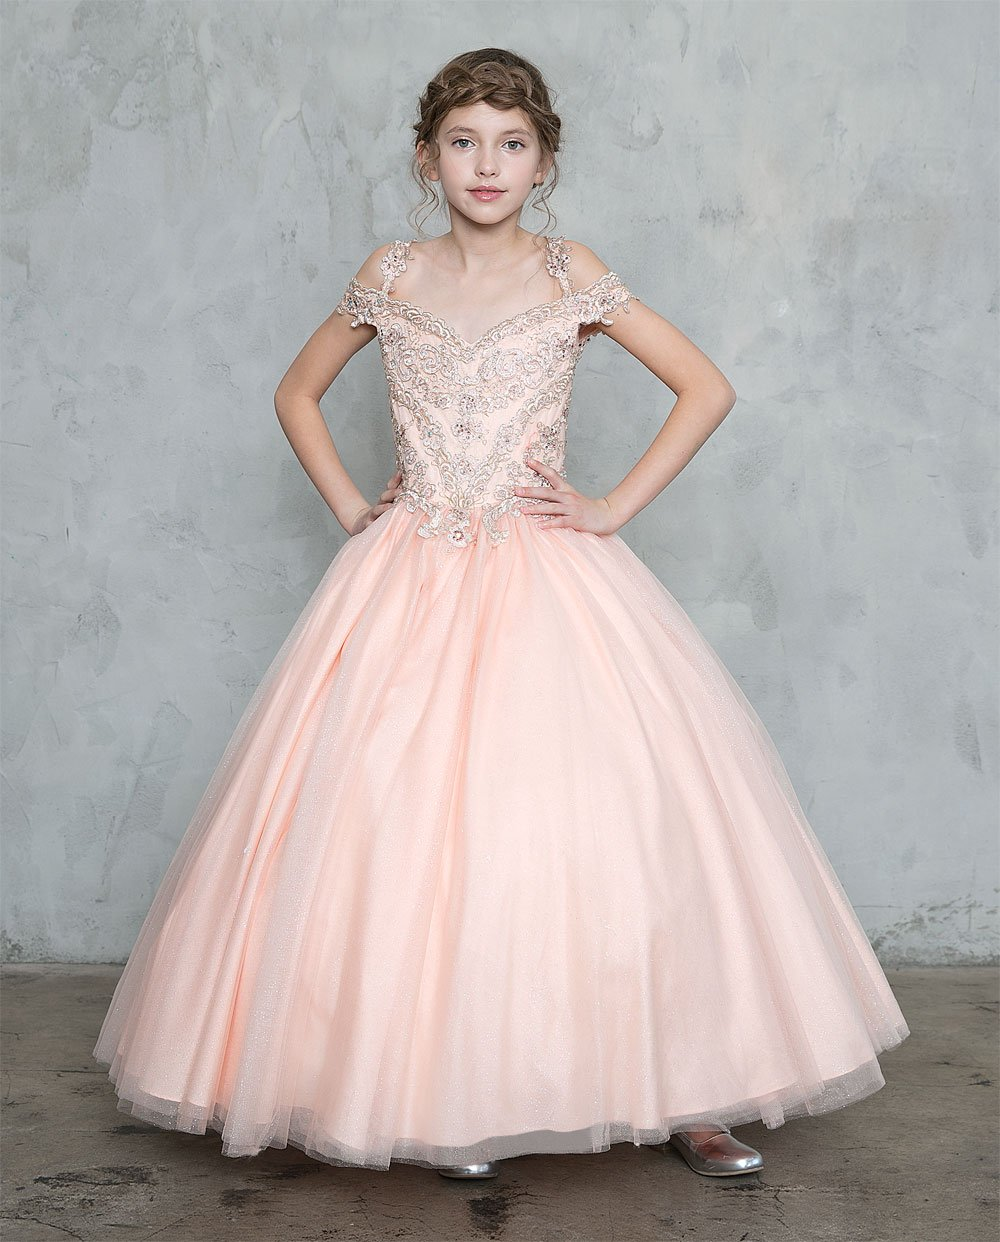 Blush Pink Girls Pageant Dress